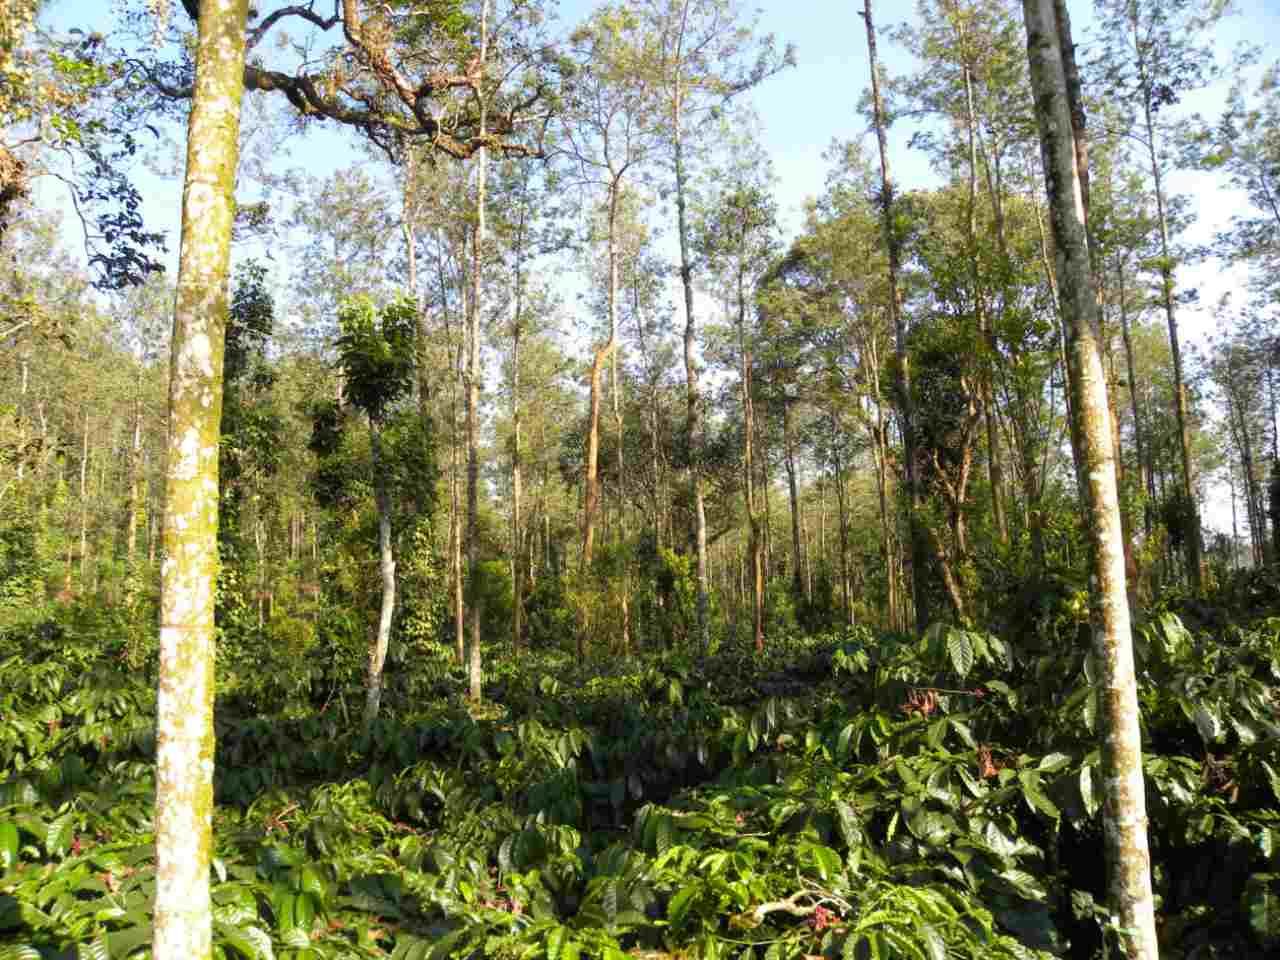 Kodagu, coffee, climate change: An agroforestry scientists notes on the connection